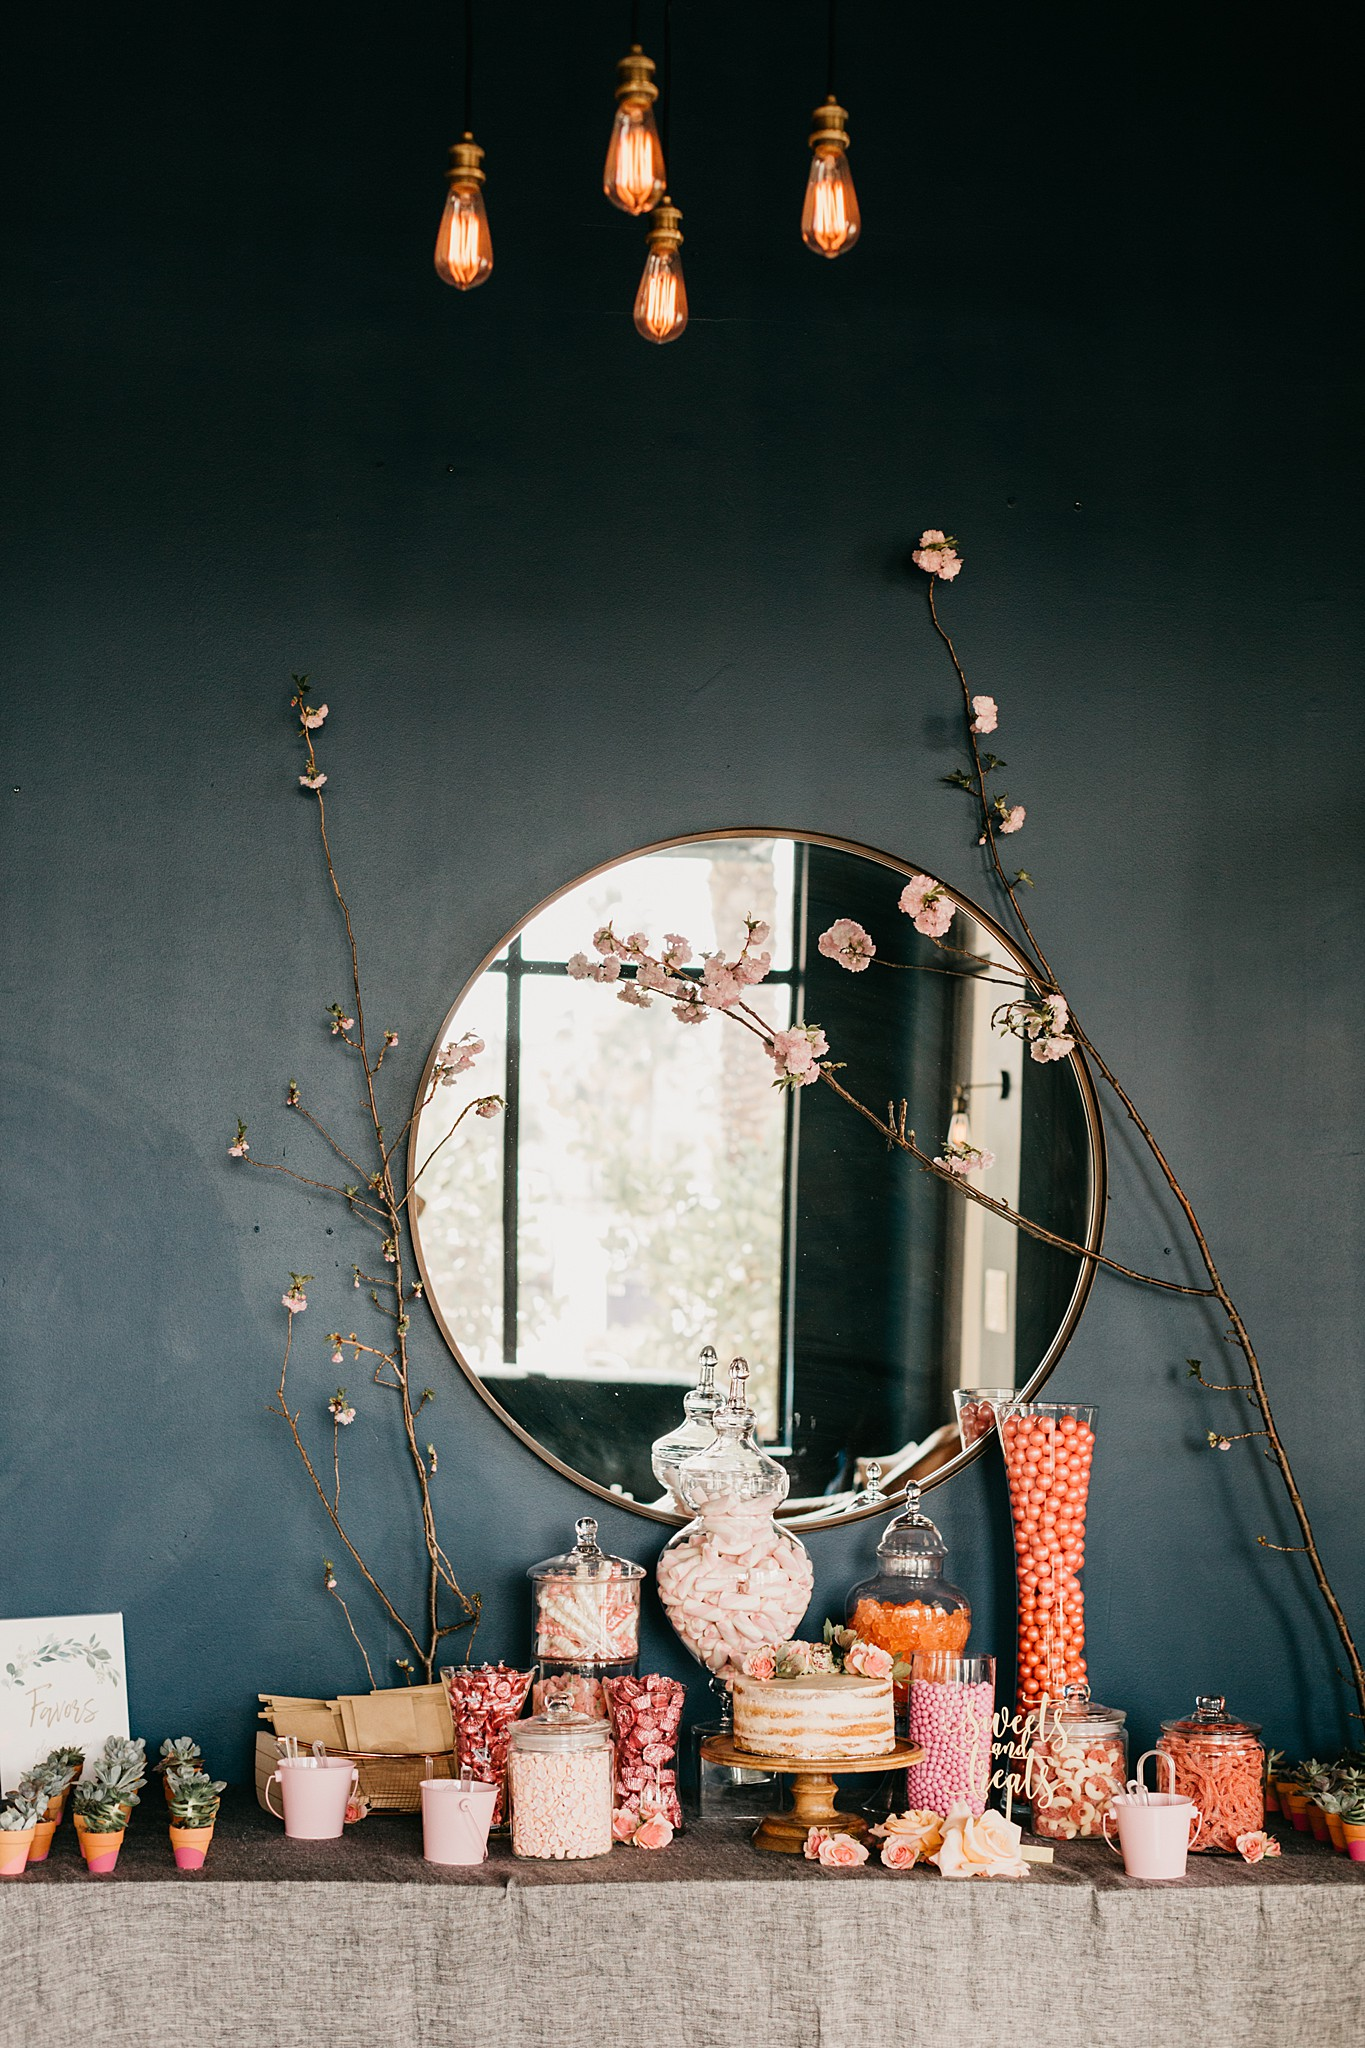 jessica bordner photography_2477.jpg